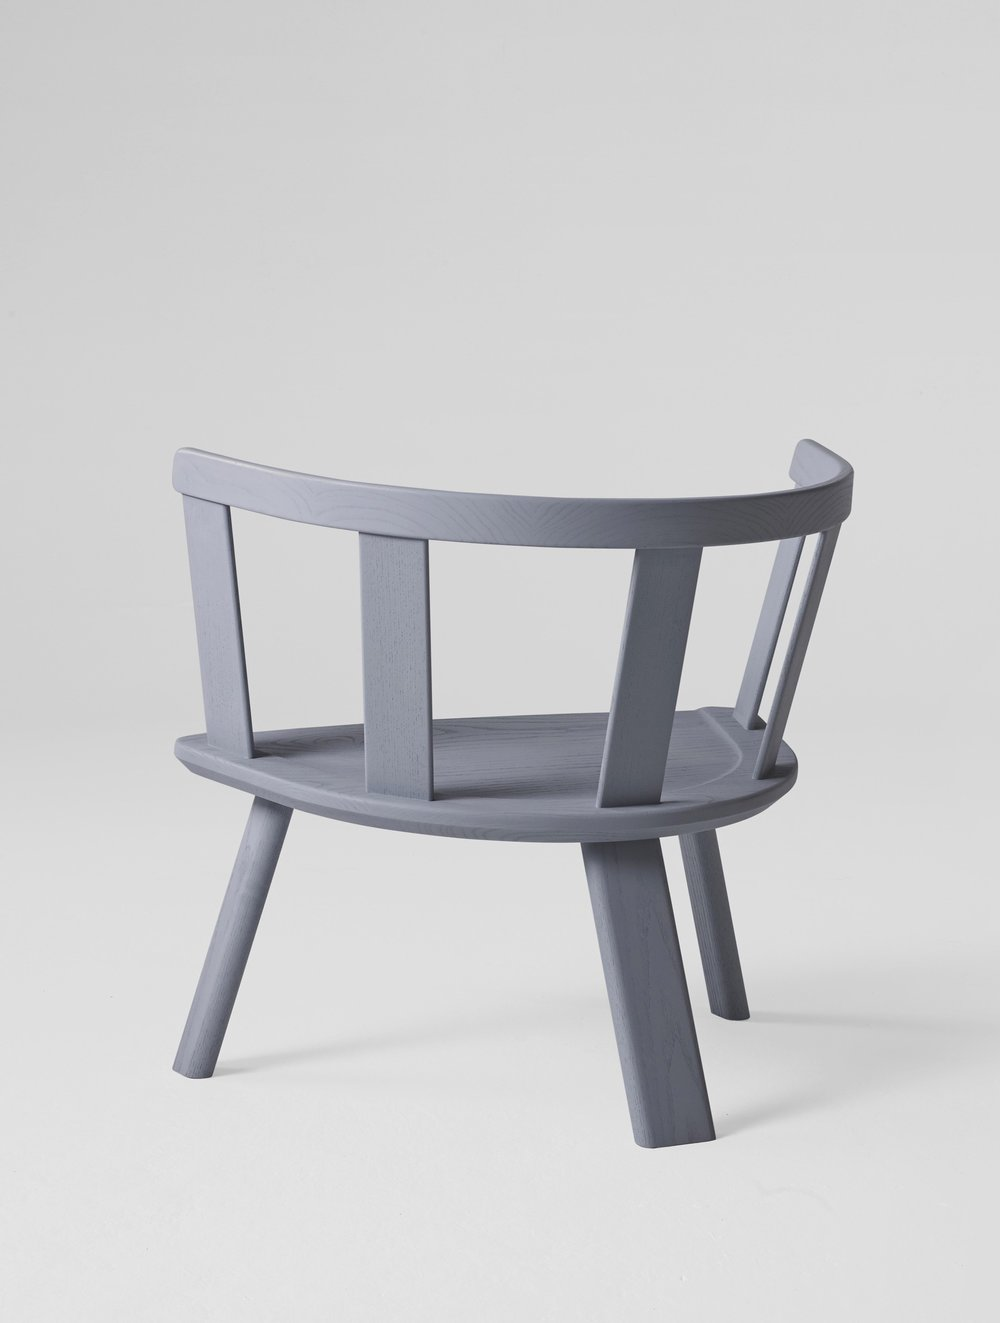 Ancestor Chair designed by MSDS